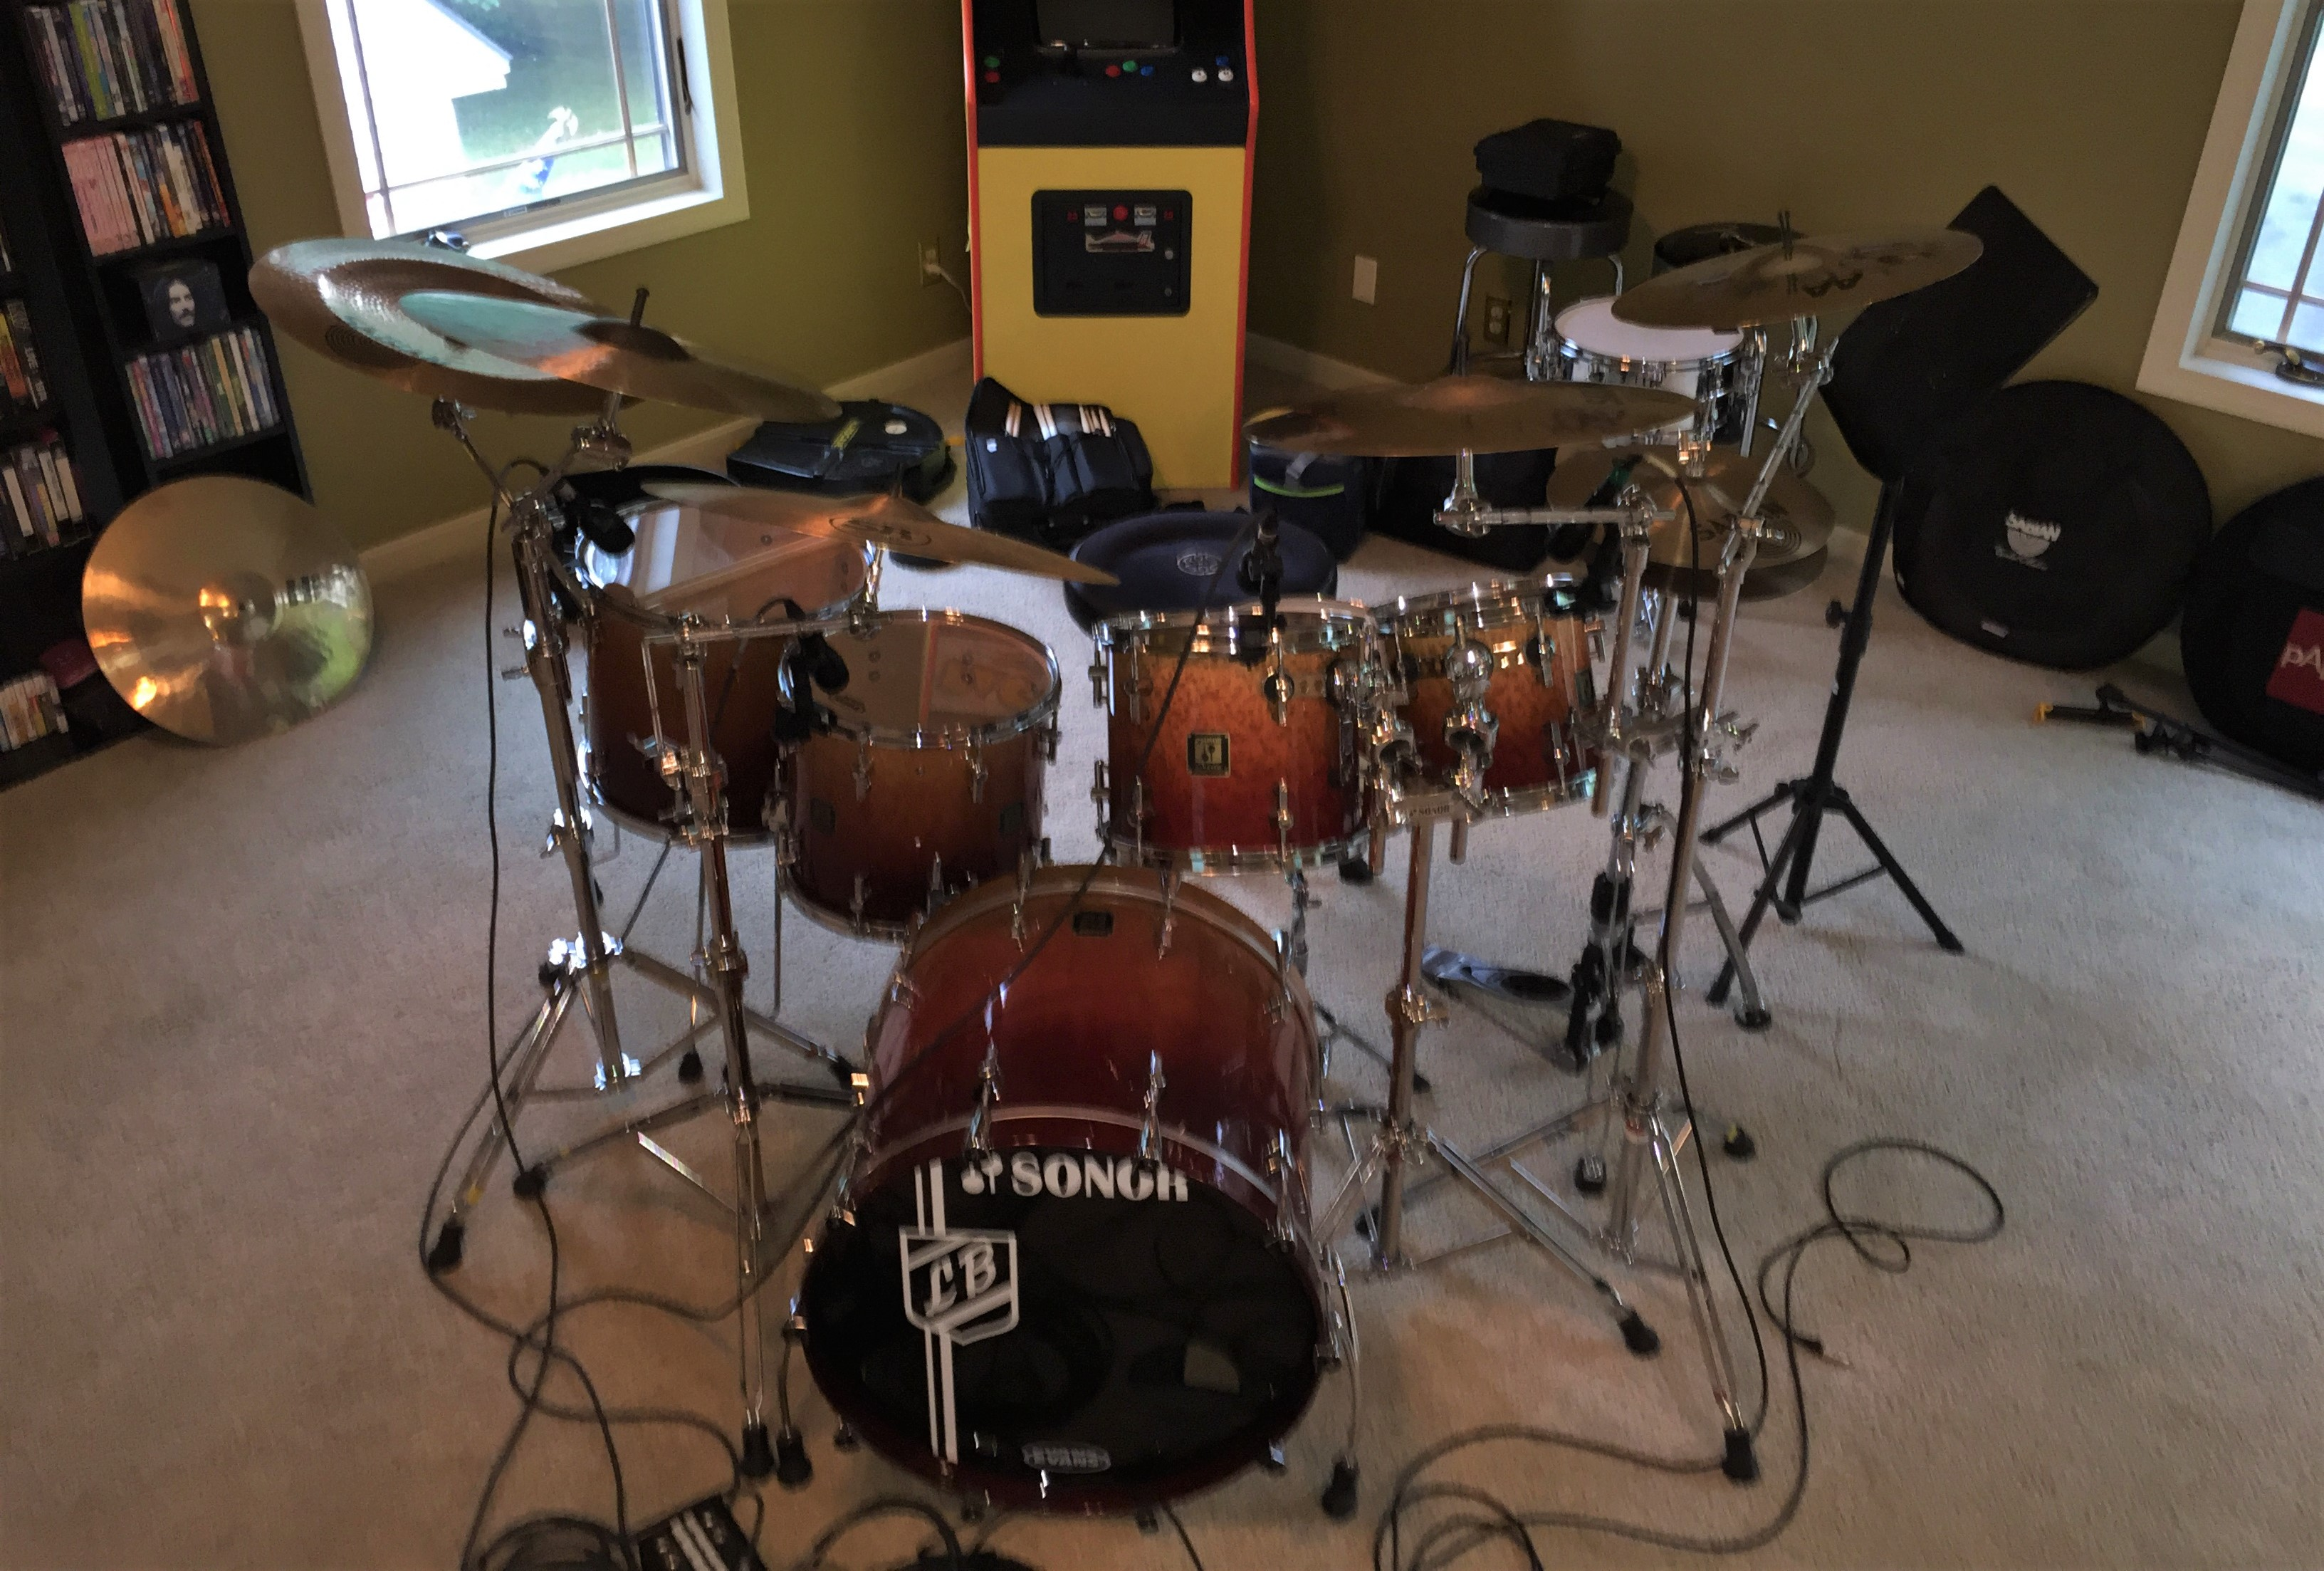 My Sonor set in a recording session